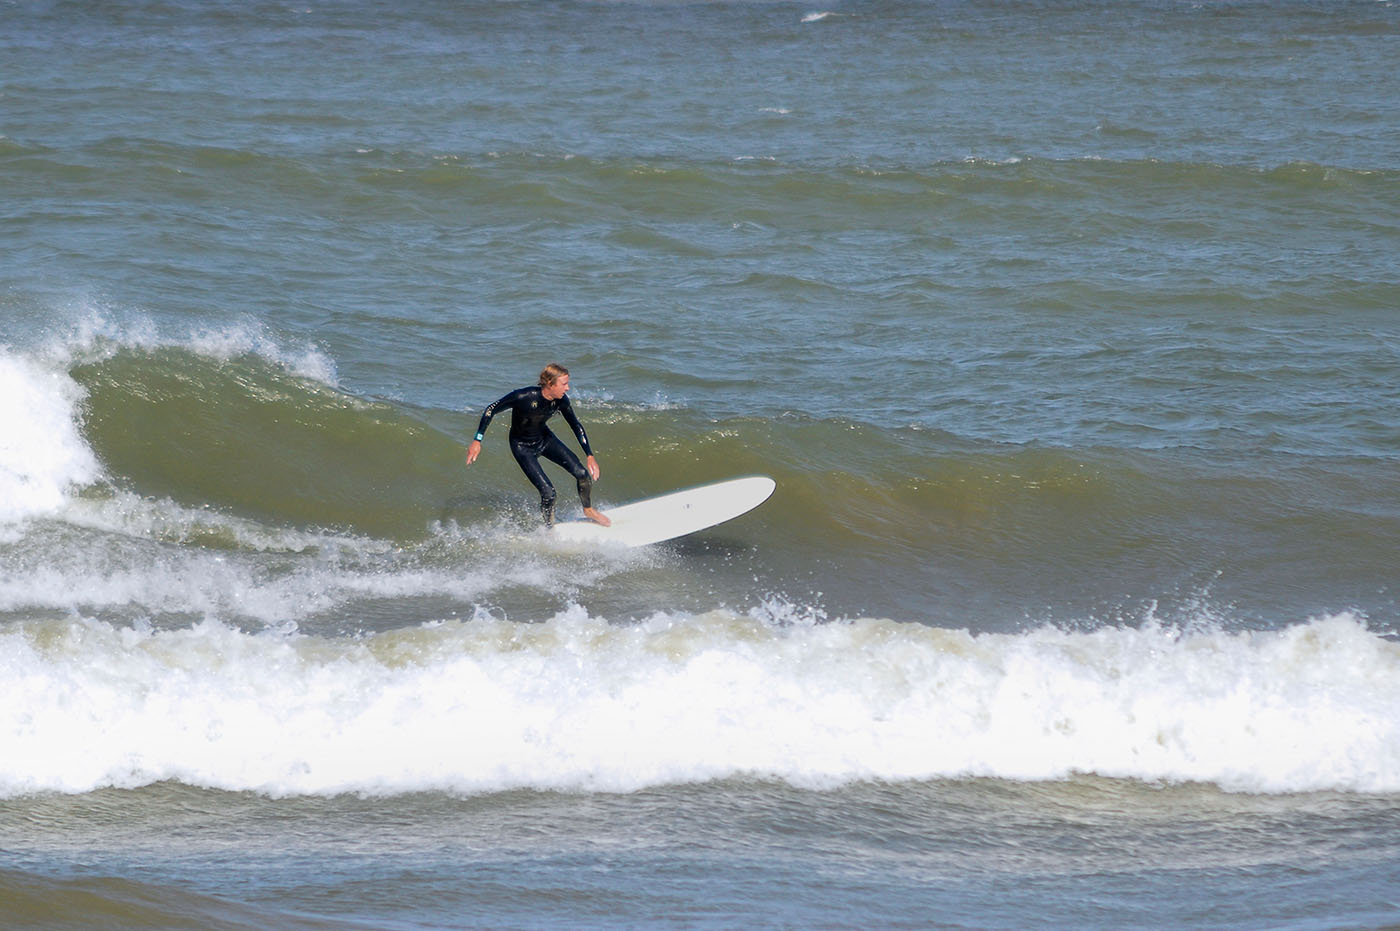 Ryan of Third Coast Surf Shop surfing Lake Michigan photo by Nowicki